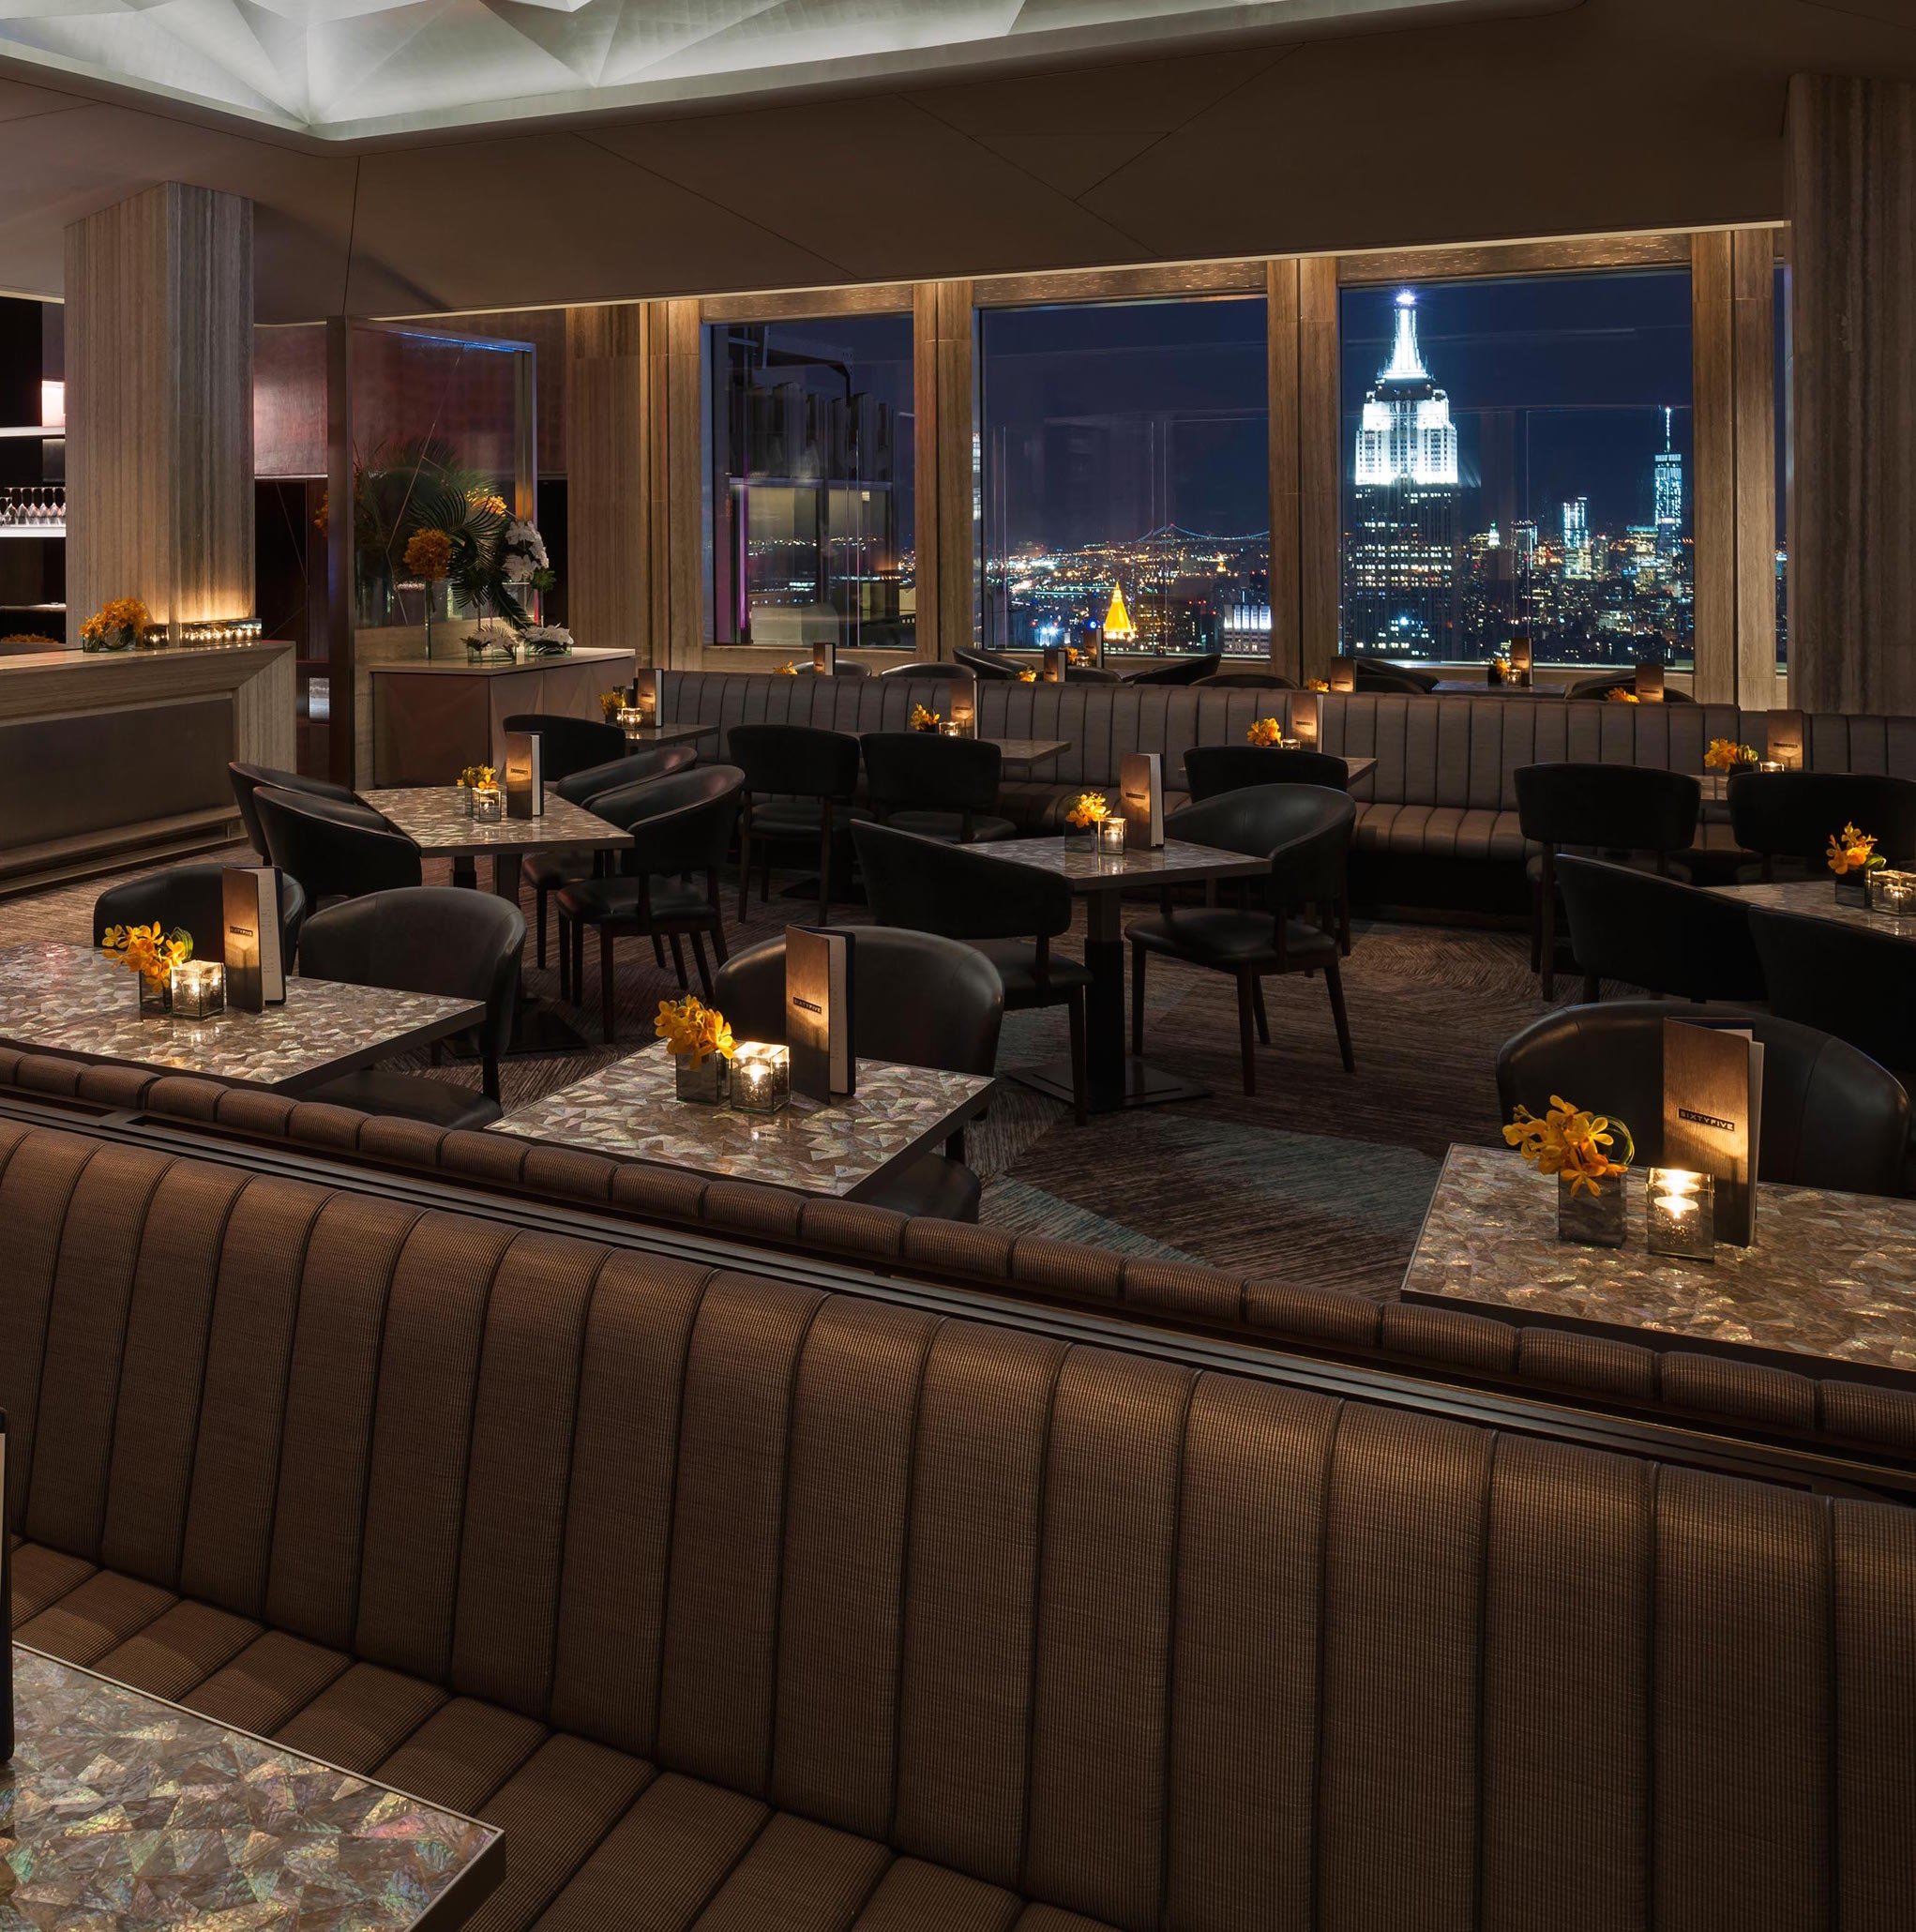 The 7 Best Bars In New York Just In Time For New Year S